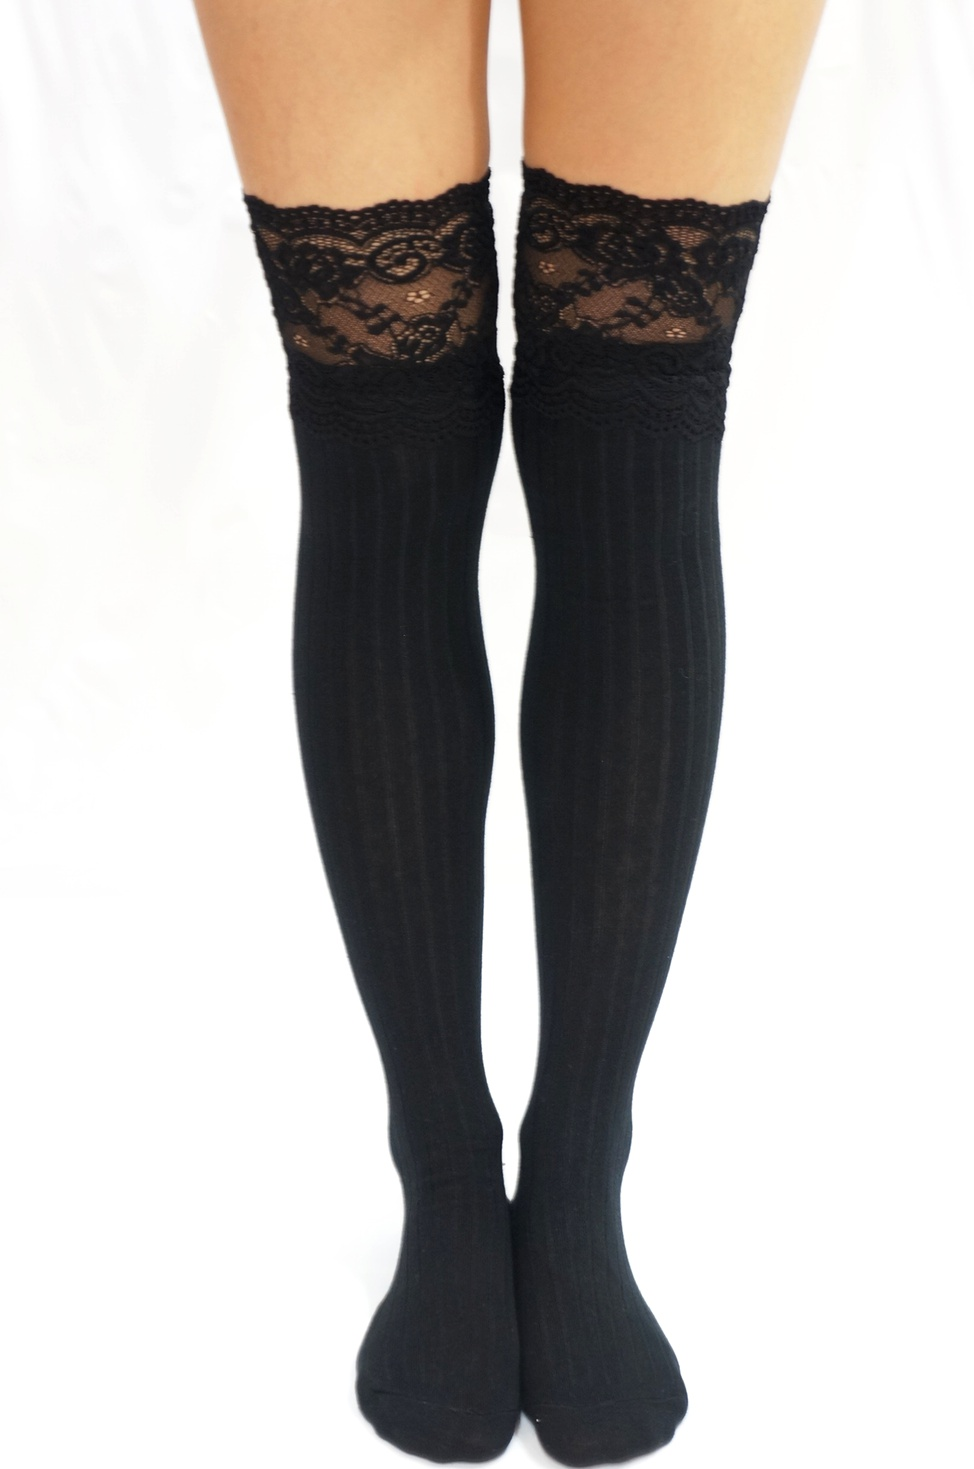 a59d4c88d Thigh Lace Knit Knee High socks Boot socks -Black - Thumbnail 1 ...